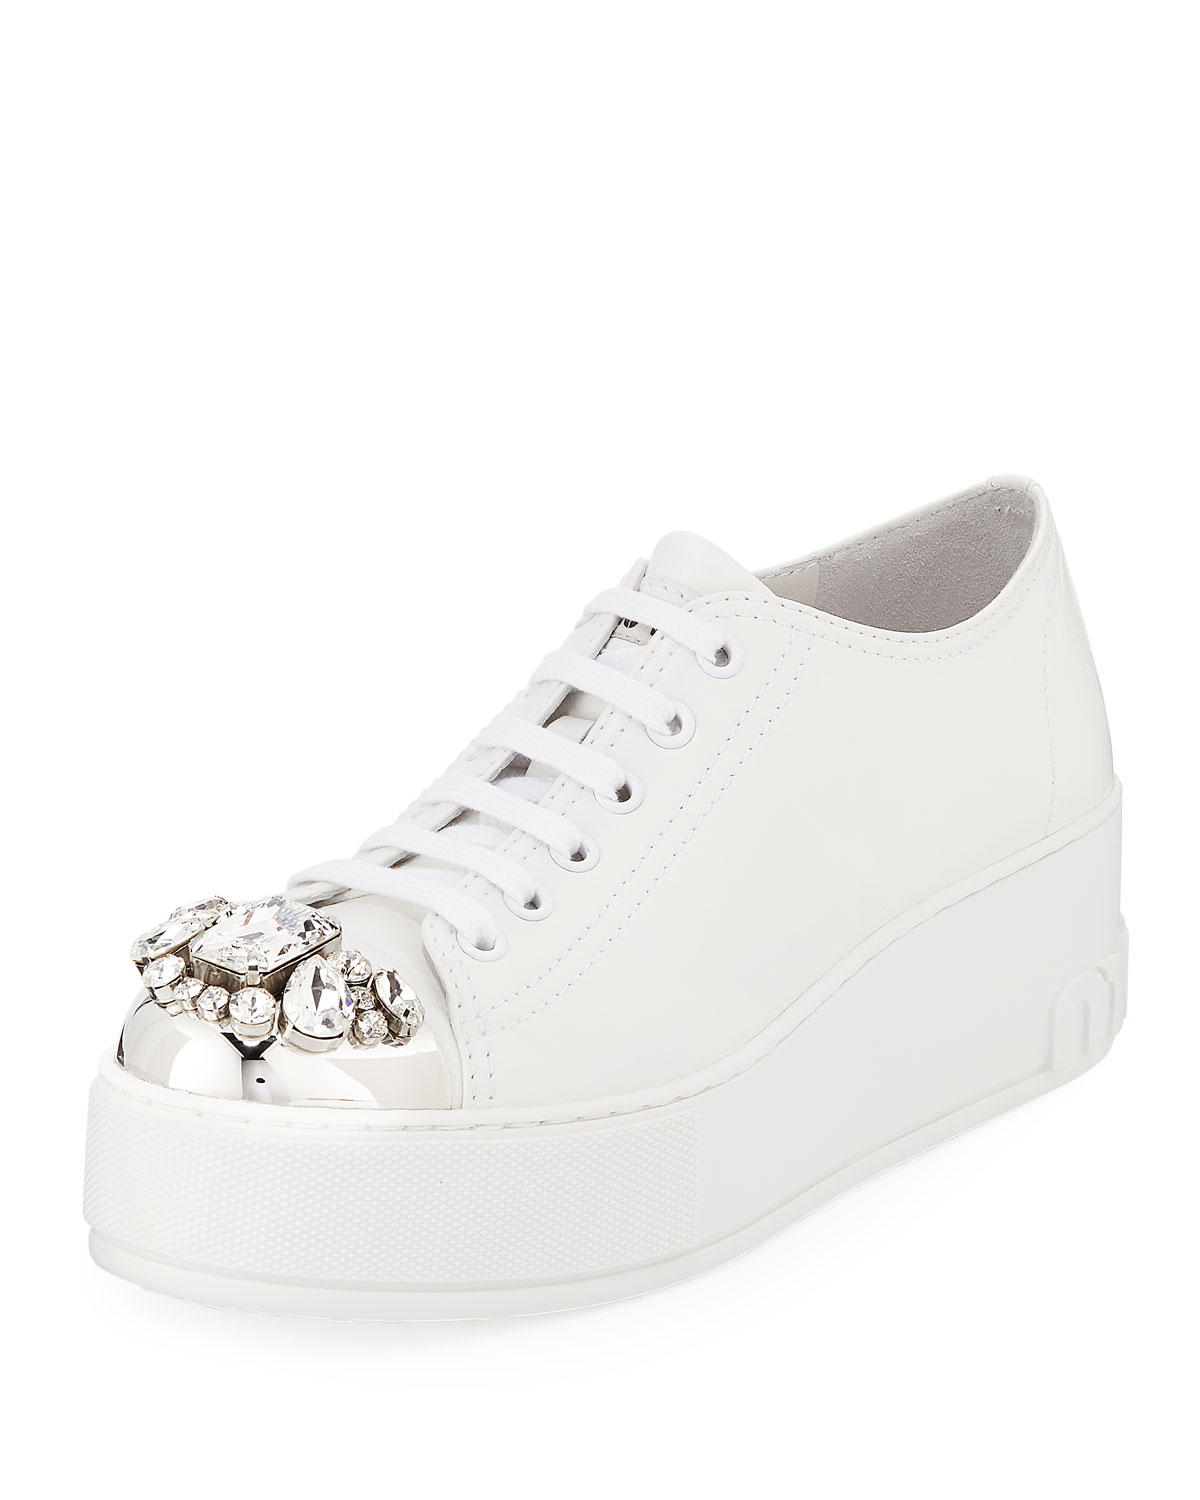 huge discount 7cb3f cf956 Jeweled Leather Platform Sneakers